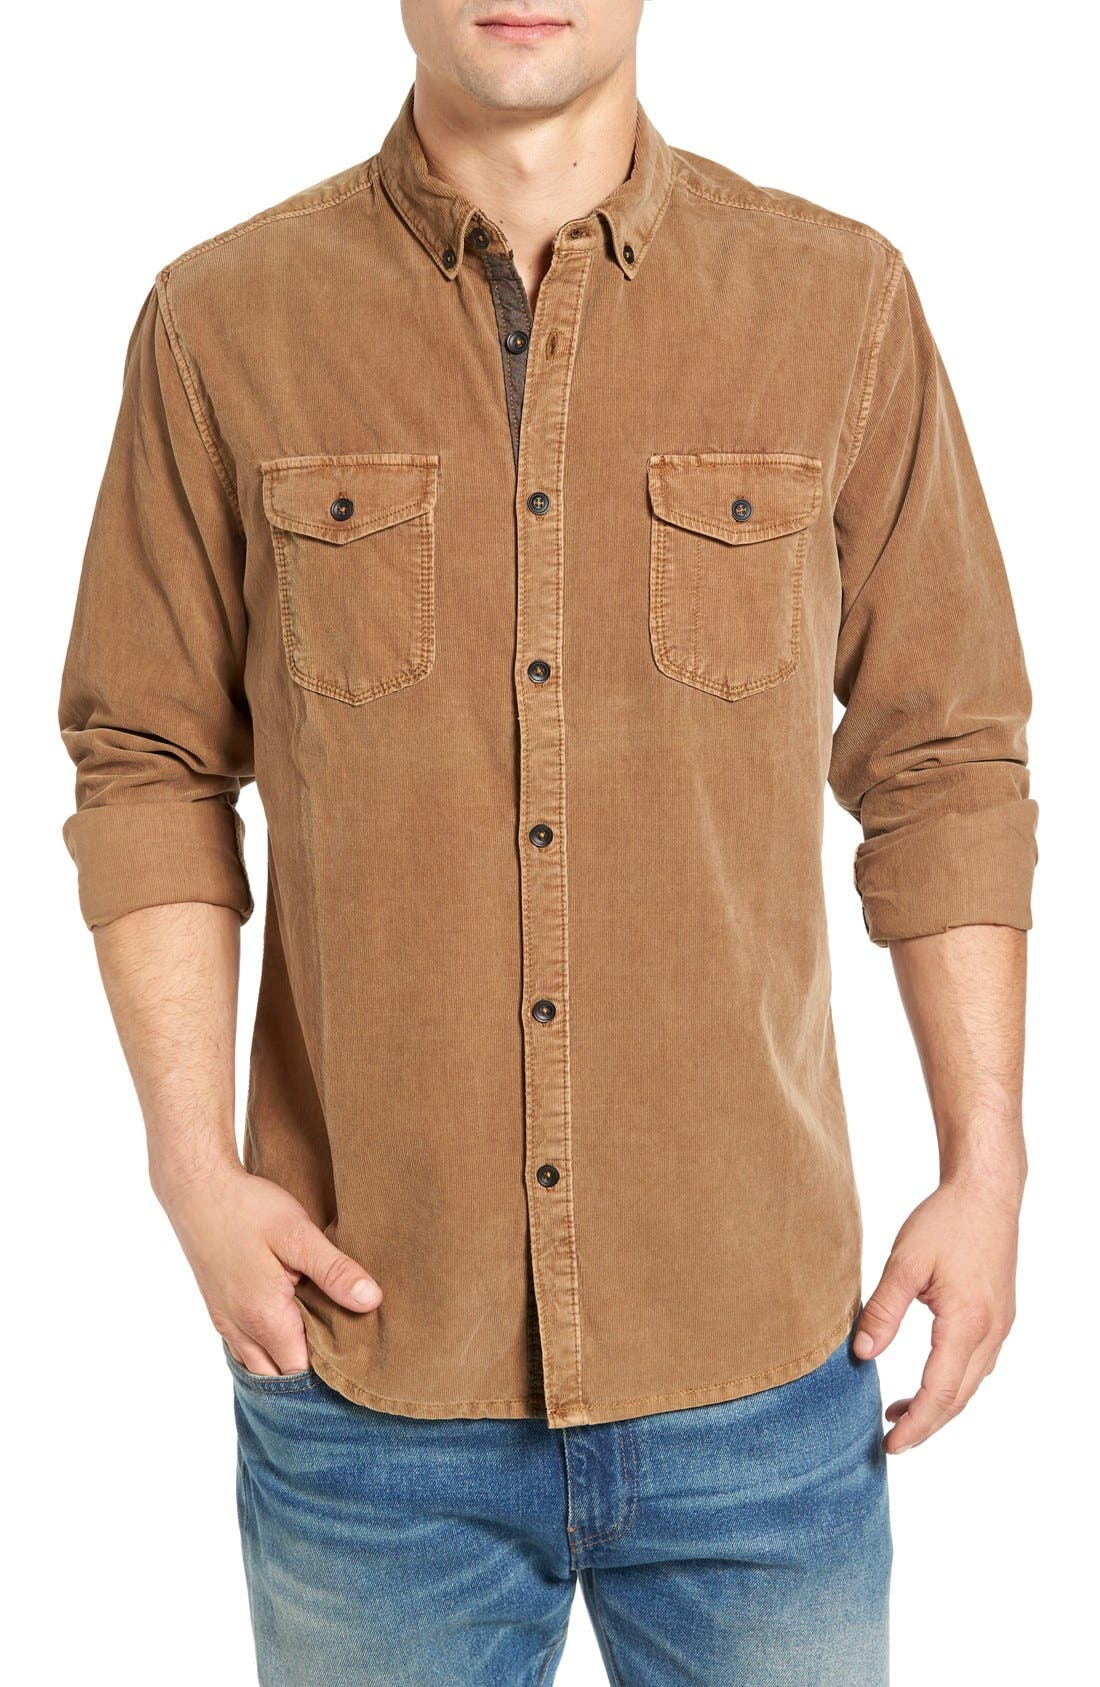 Alternate Image 1 Selected - Jeremiah 'Jaymes' Pigment Dyed Corduroy Shirt